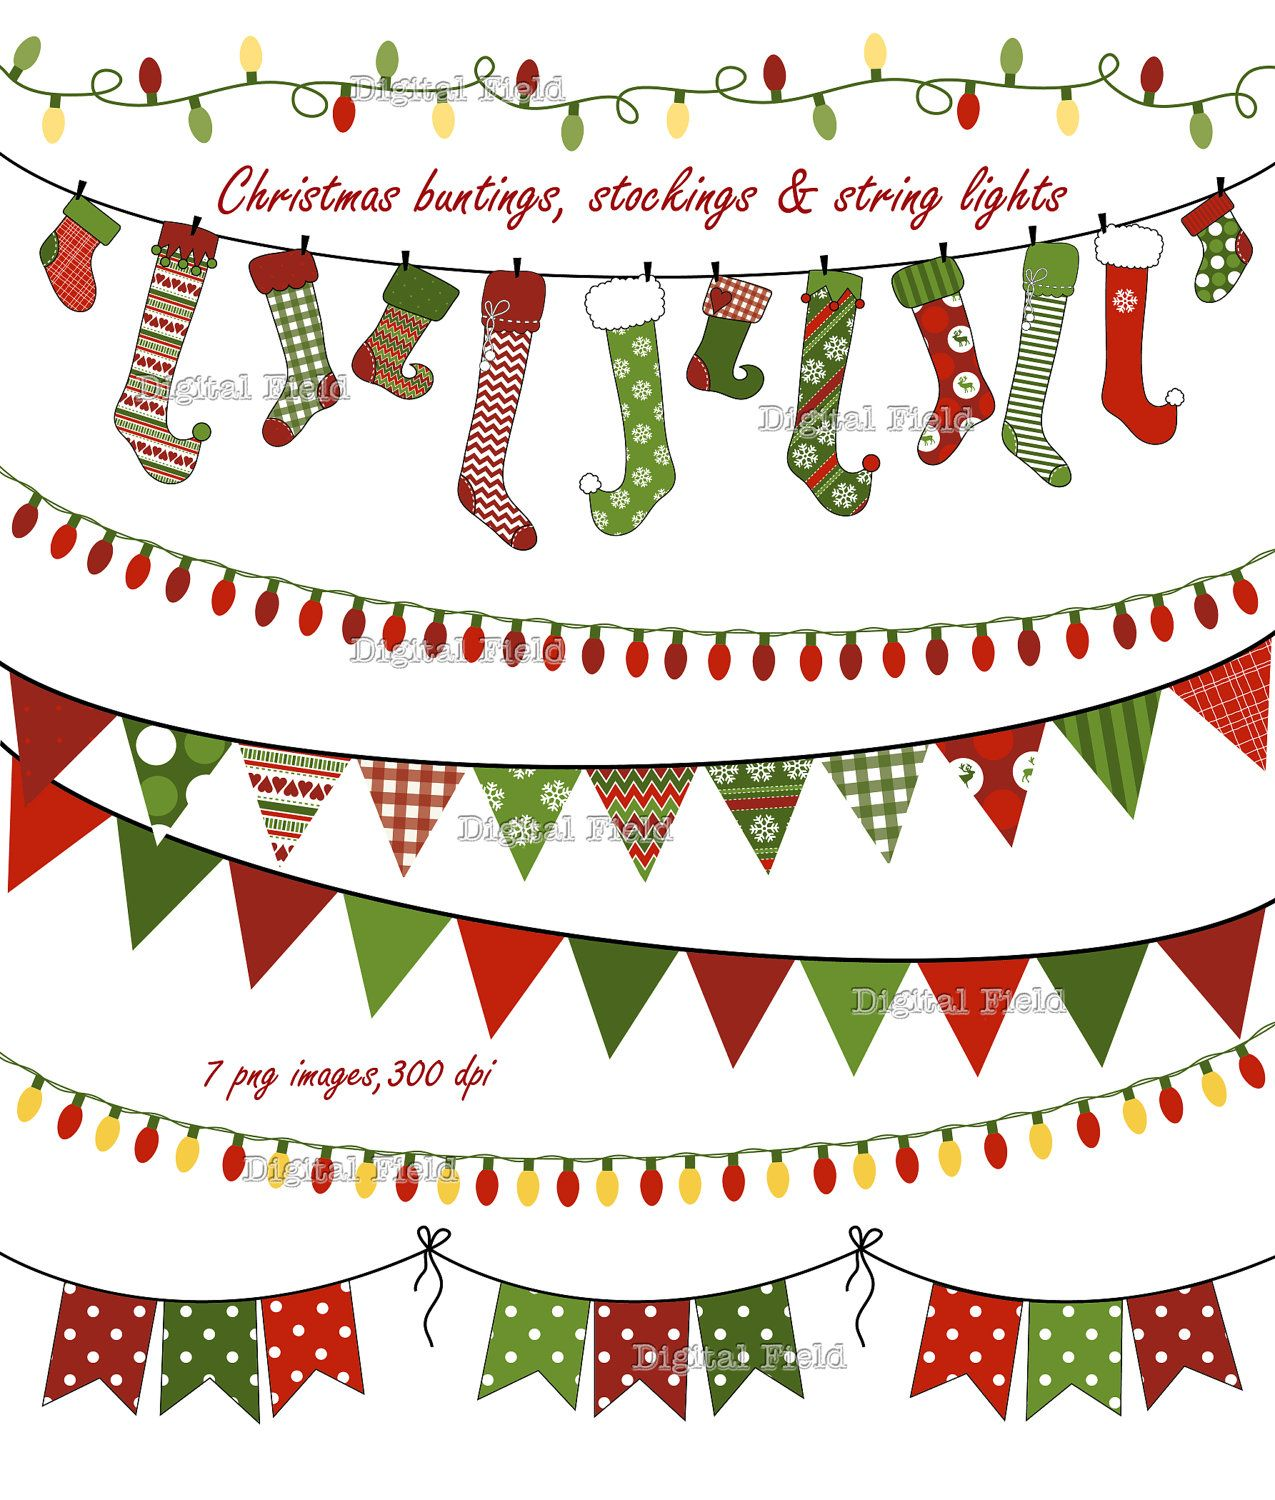 Christmas Buntings Stockings & Lights clip art by.